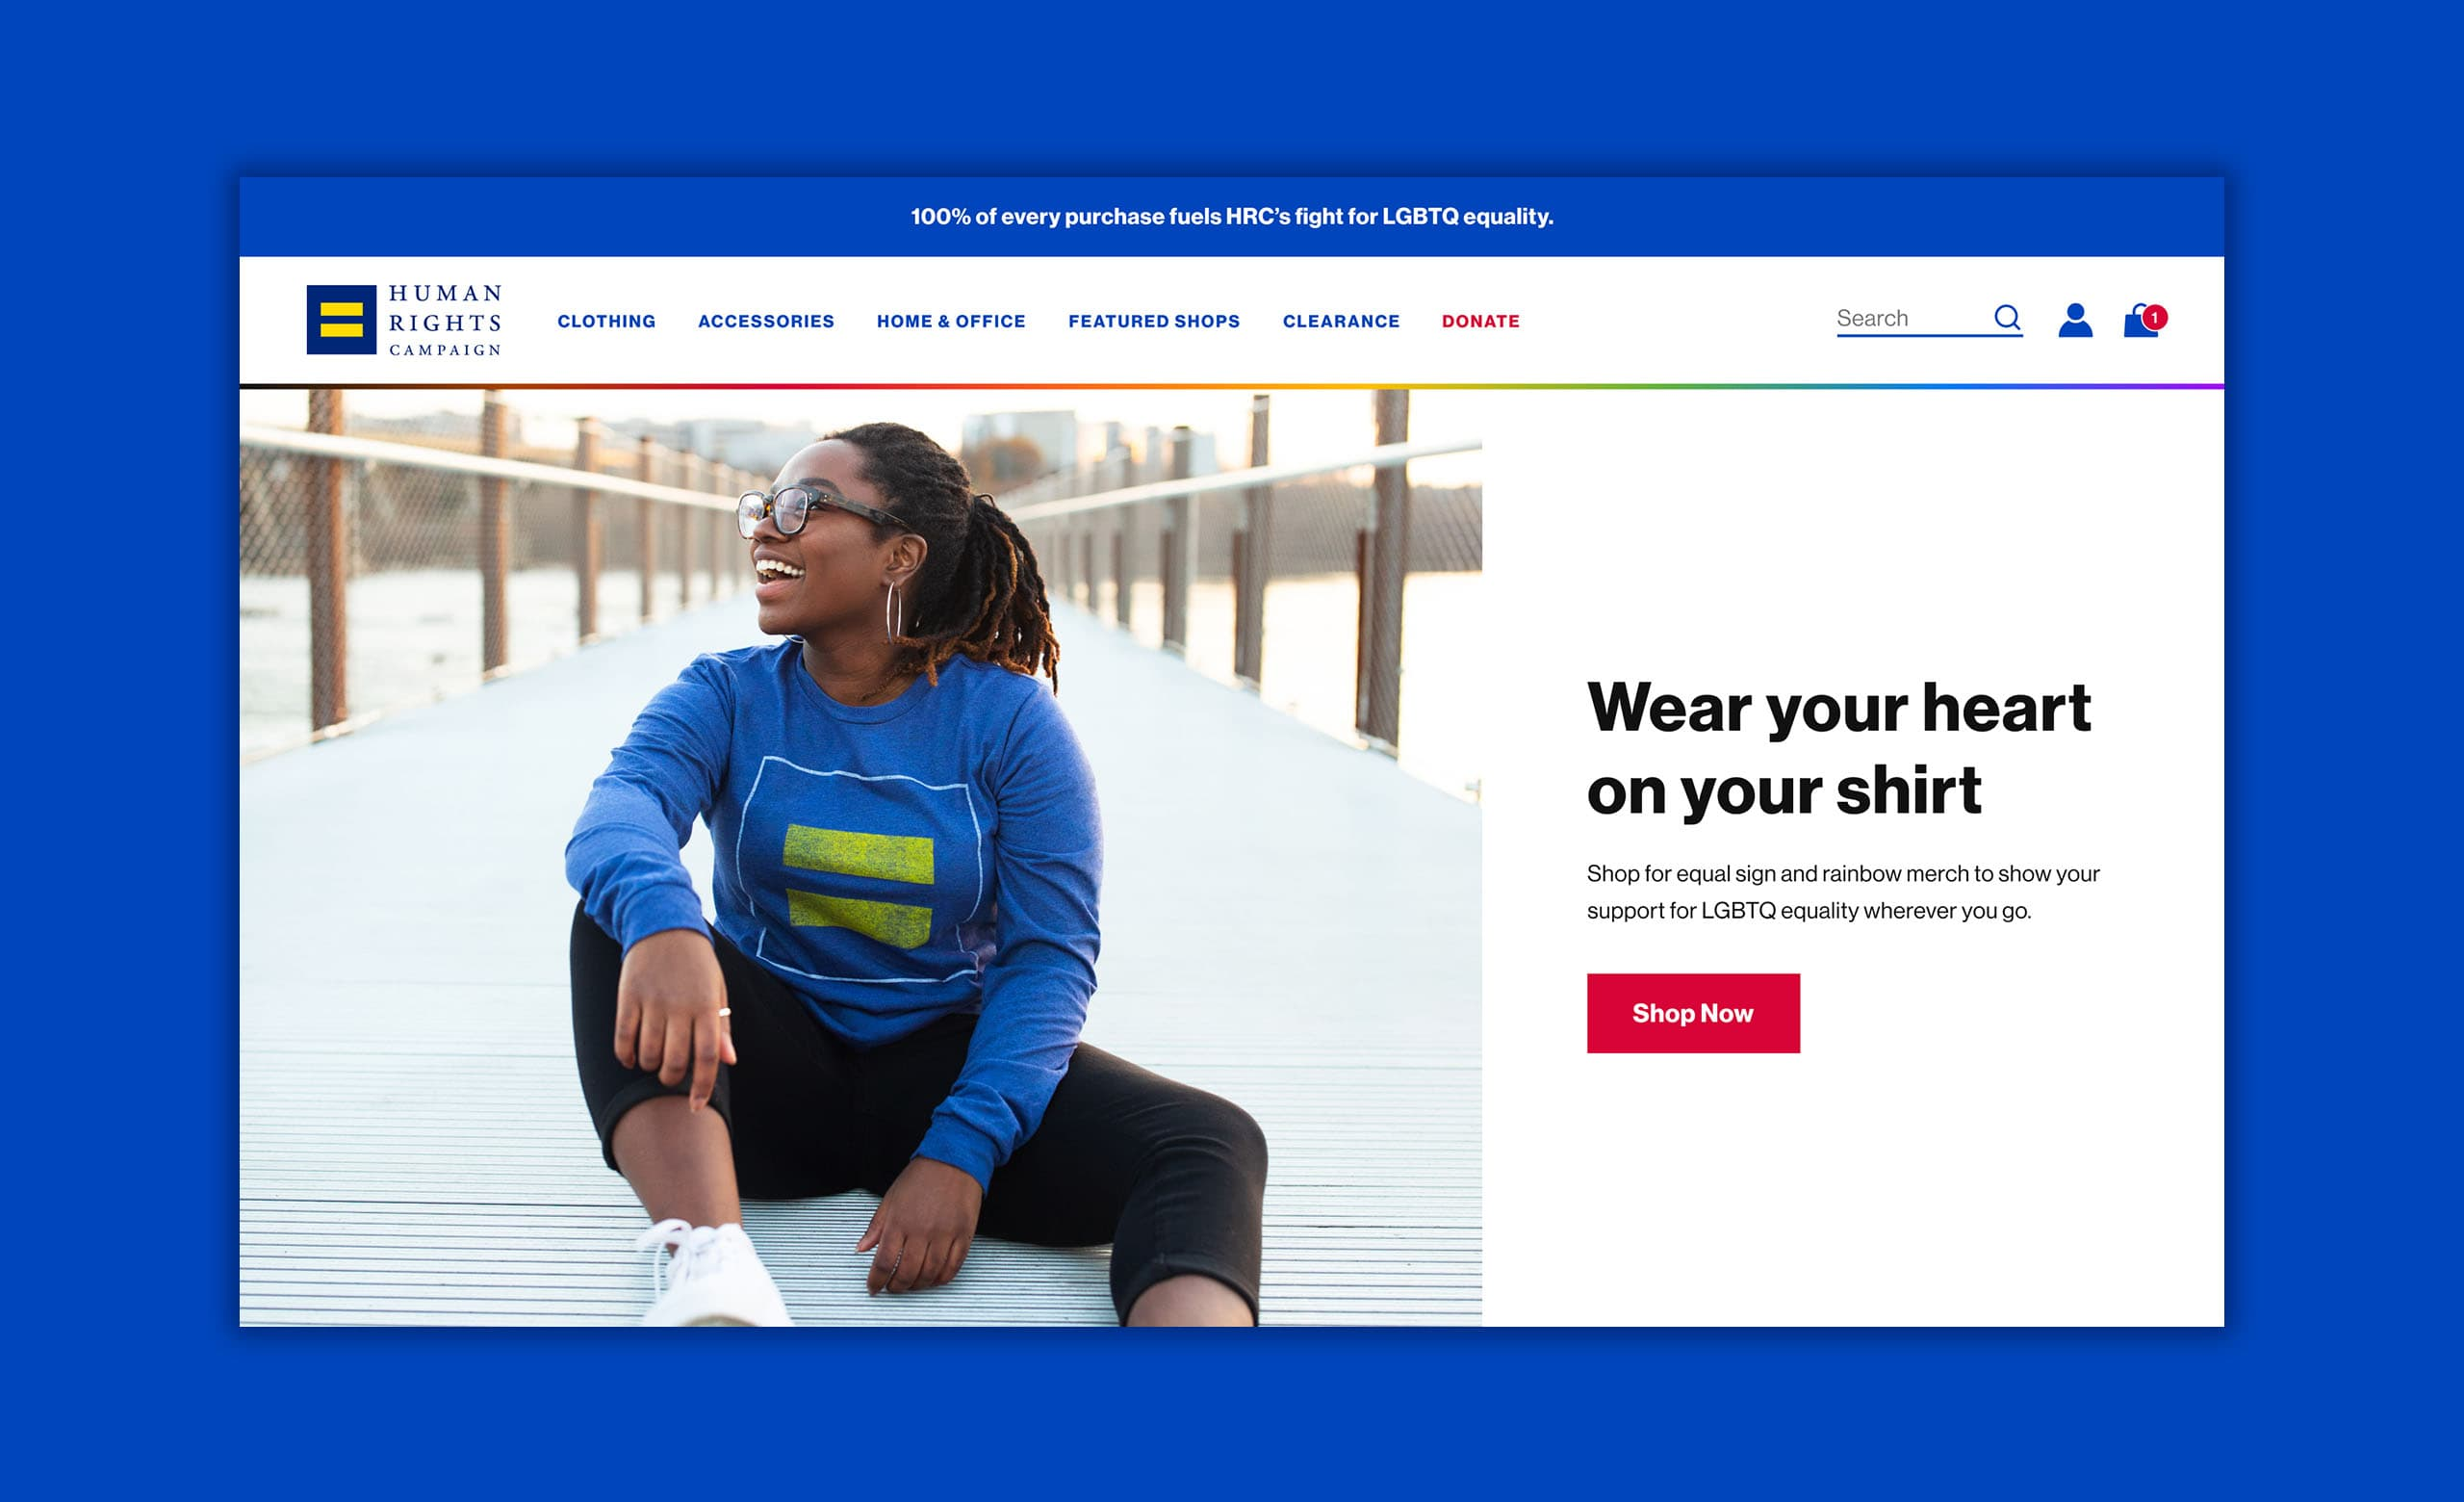 The desktop hero section of the homepage of HRC's ecommerce merchandise store.